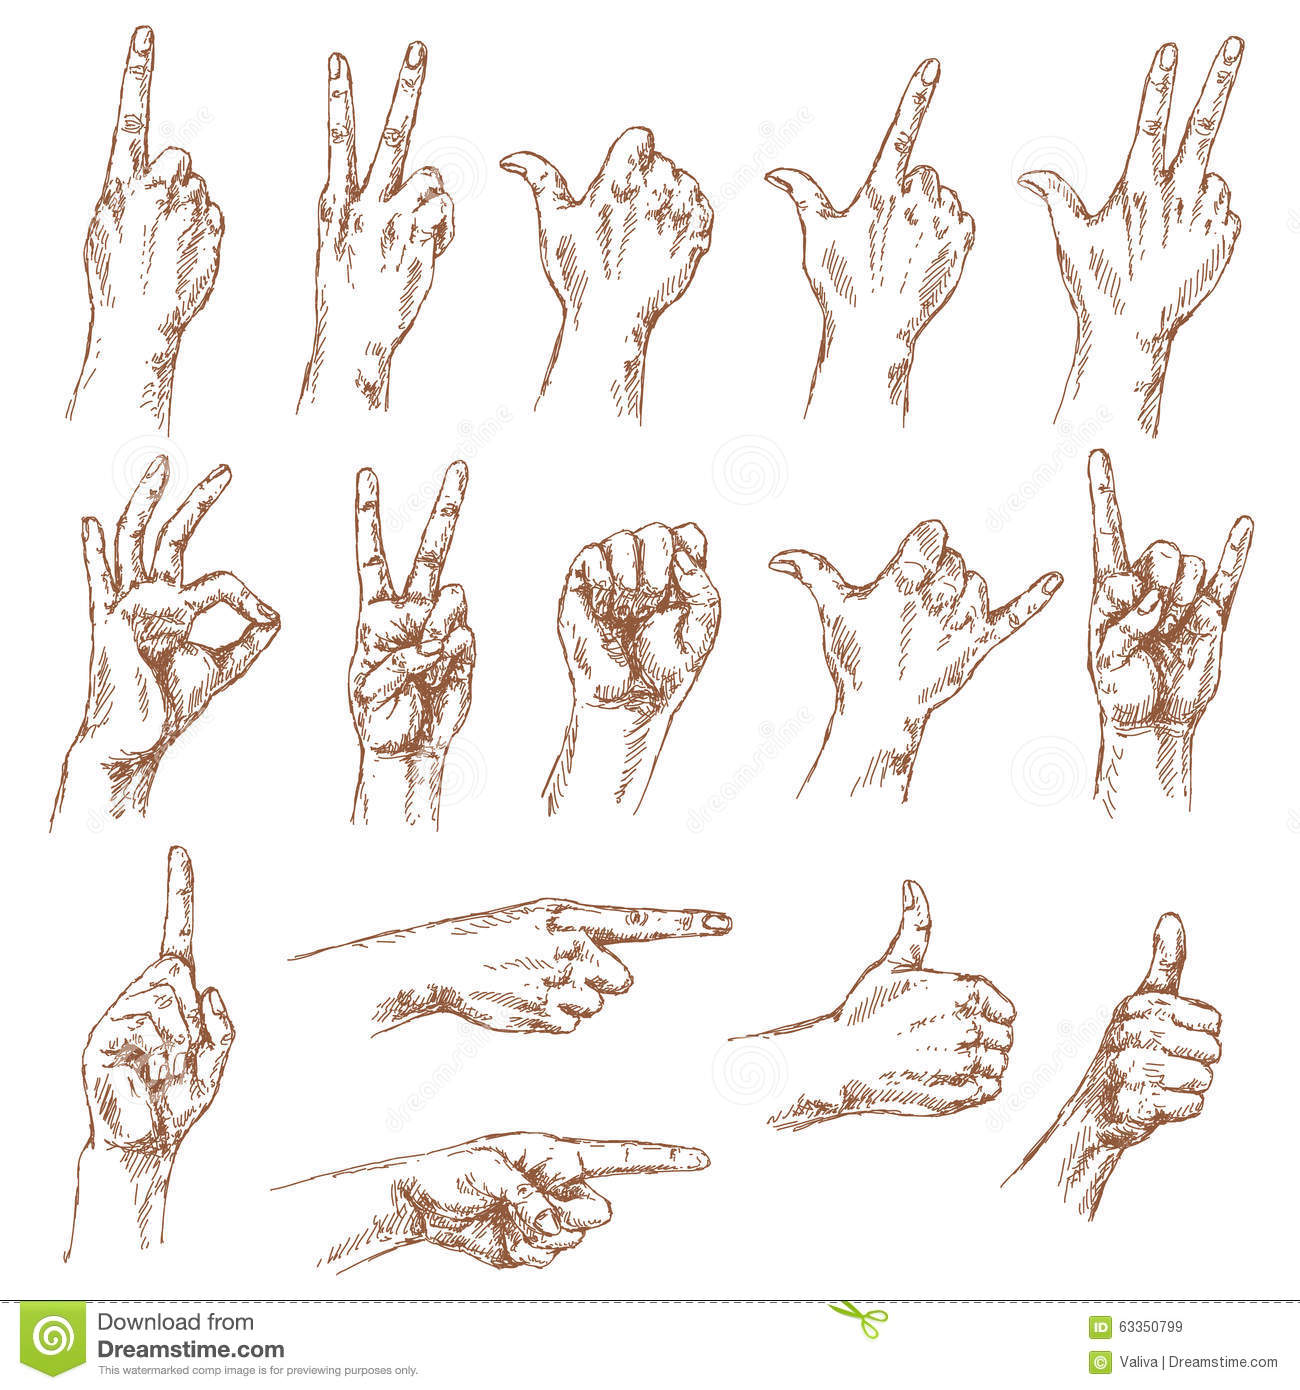 Küchengeräte Comic Sketch Of Hand Gestures Stock Vector Illustration Of